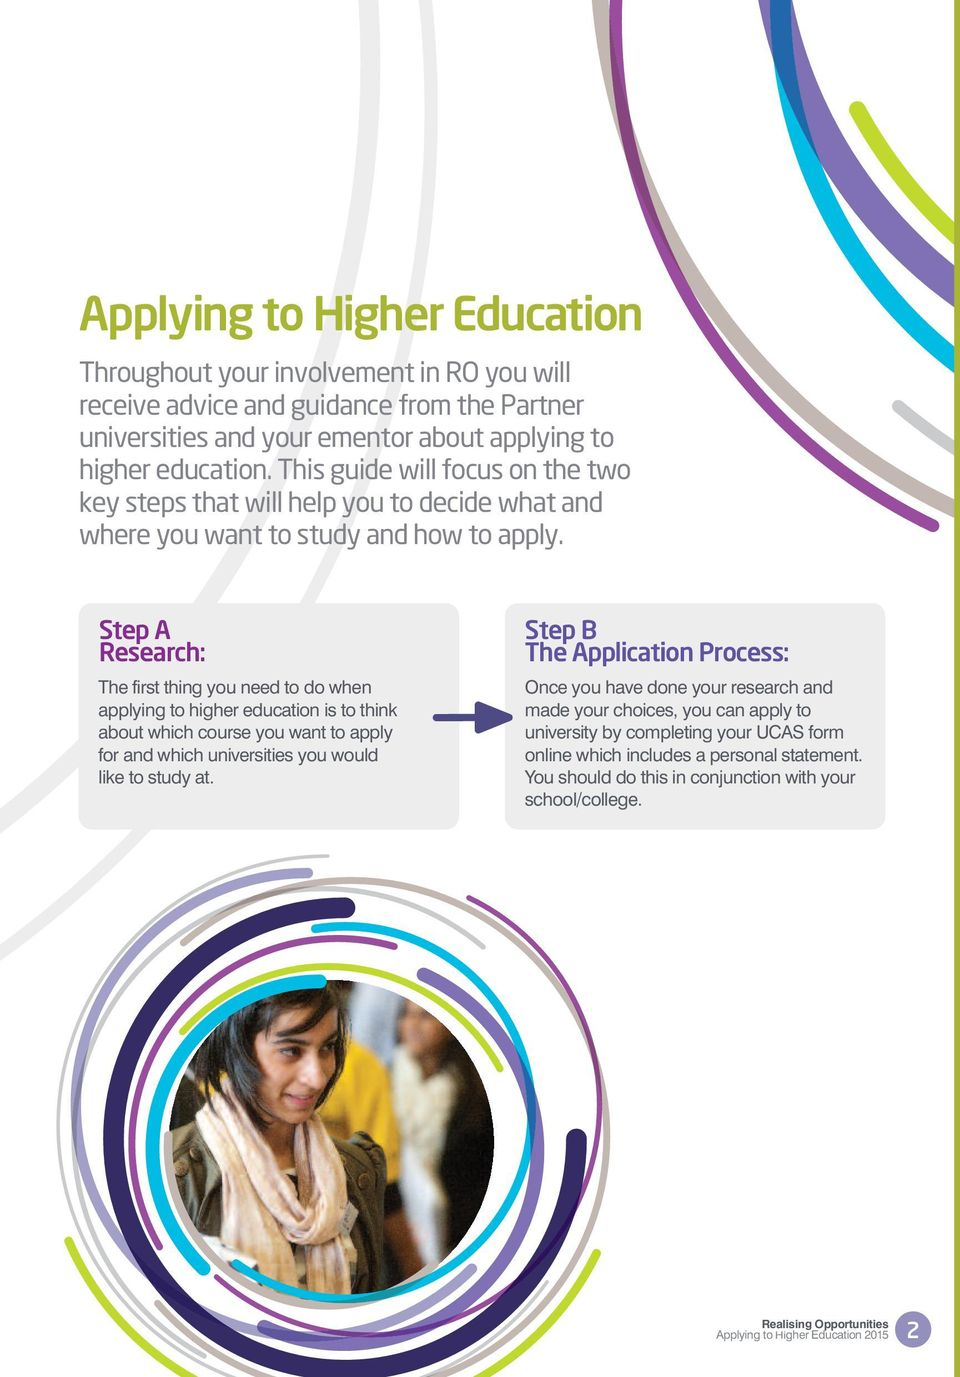 Step A Research: The first thing you need to do when applying to higher education is to think about which course you want to apply for and which universities you would like to study at.